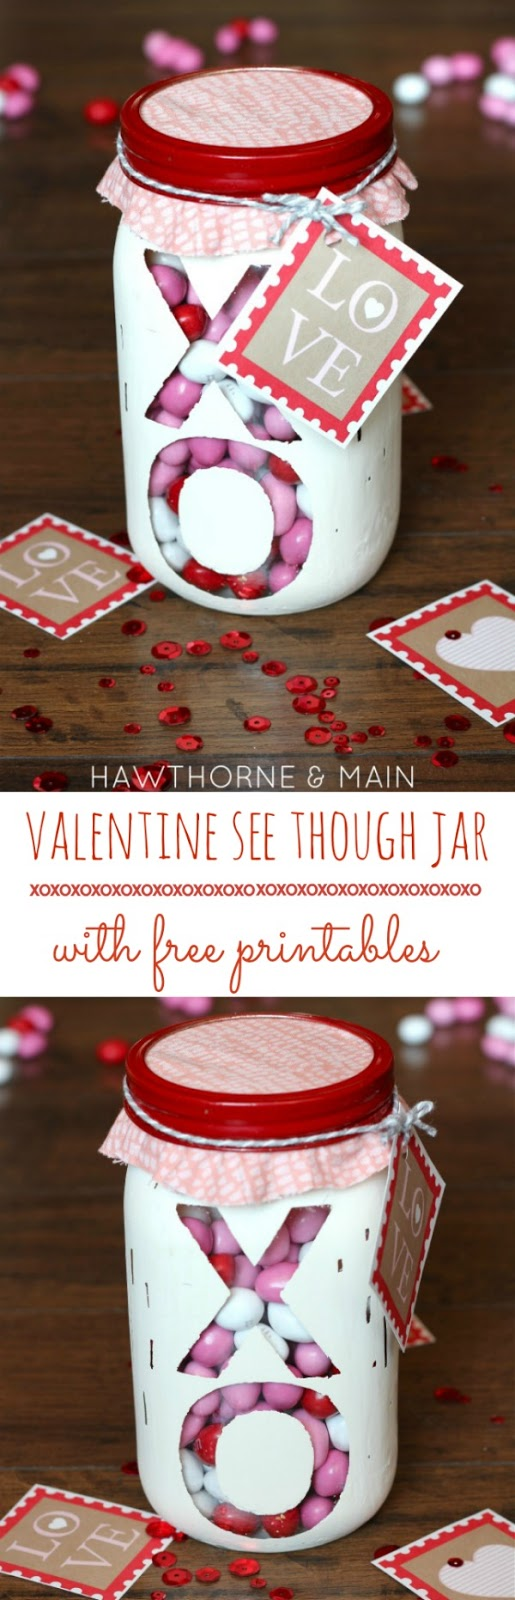 Valentines day mason jar diy project with free printable gift tag valentines day mason jar filled with candy and free printable an easy valentines day diy solutioingenieria Choice Image